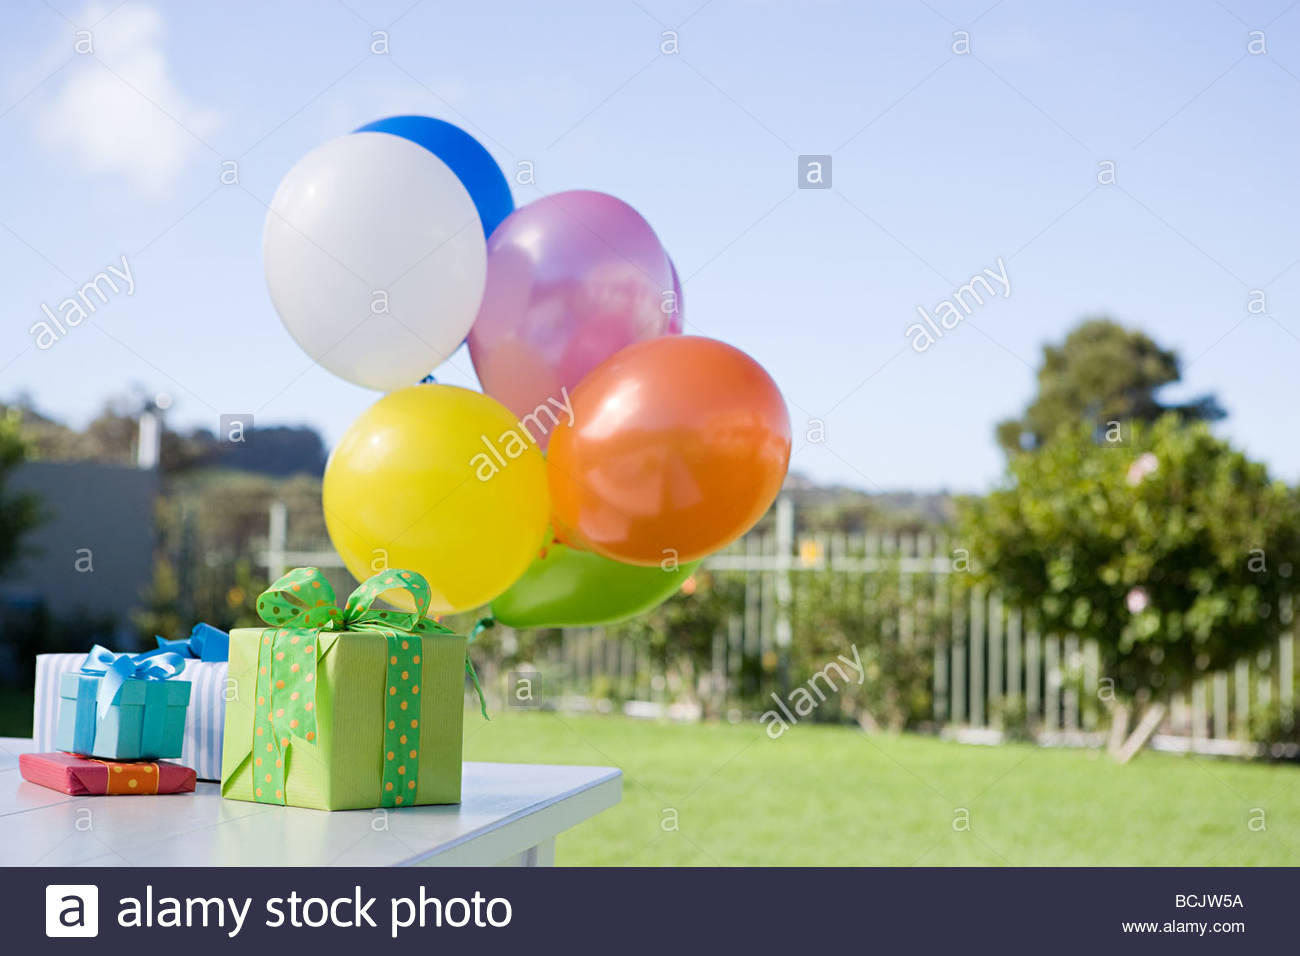 Balloons and birthday presents on table in garden - Stock Image